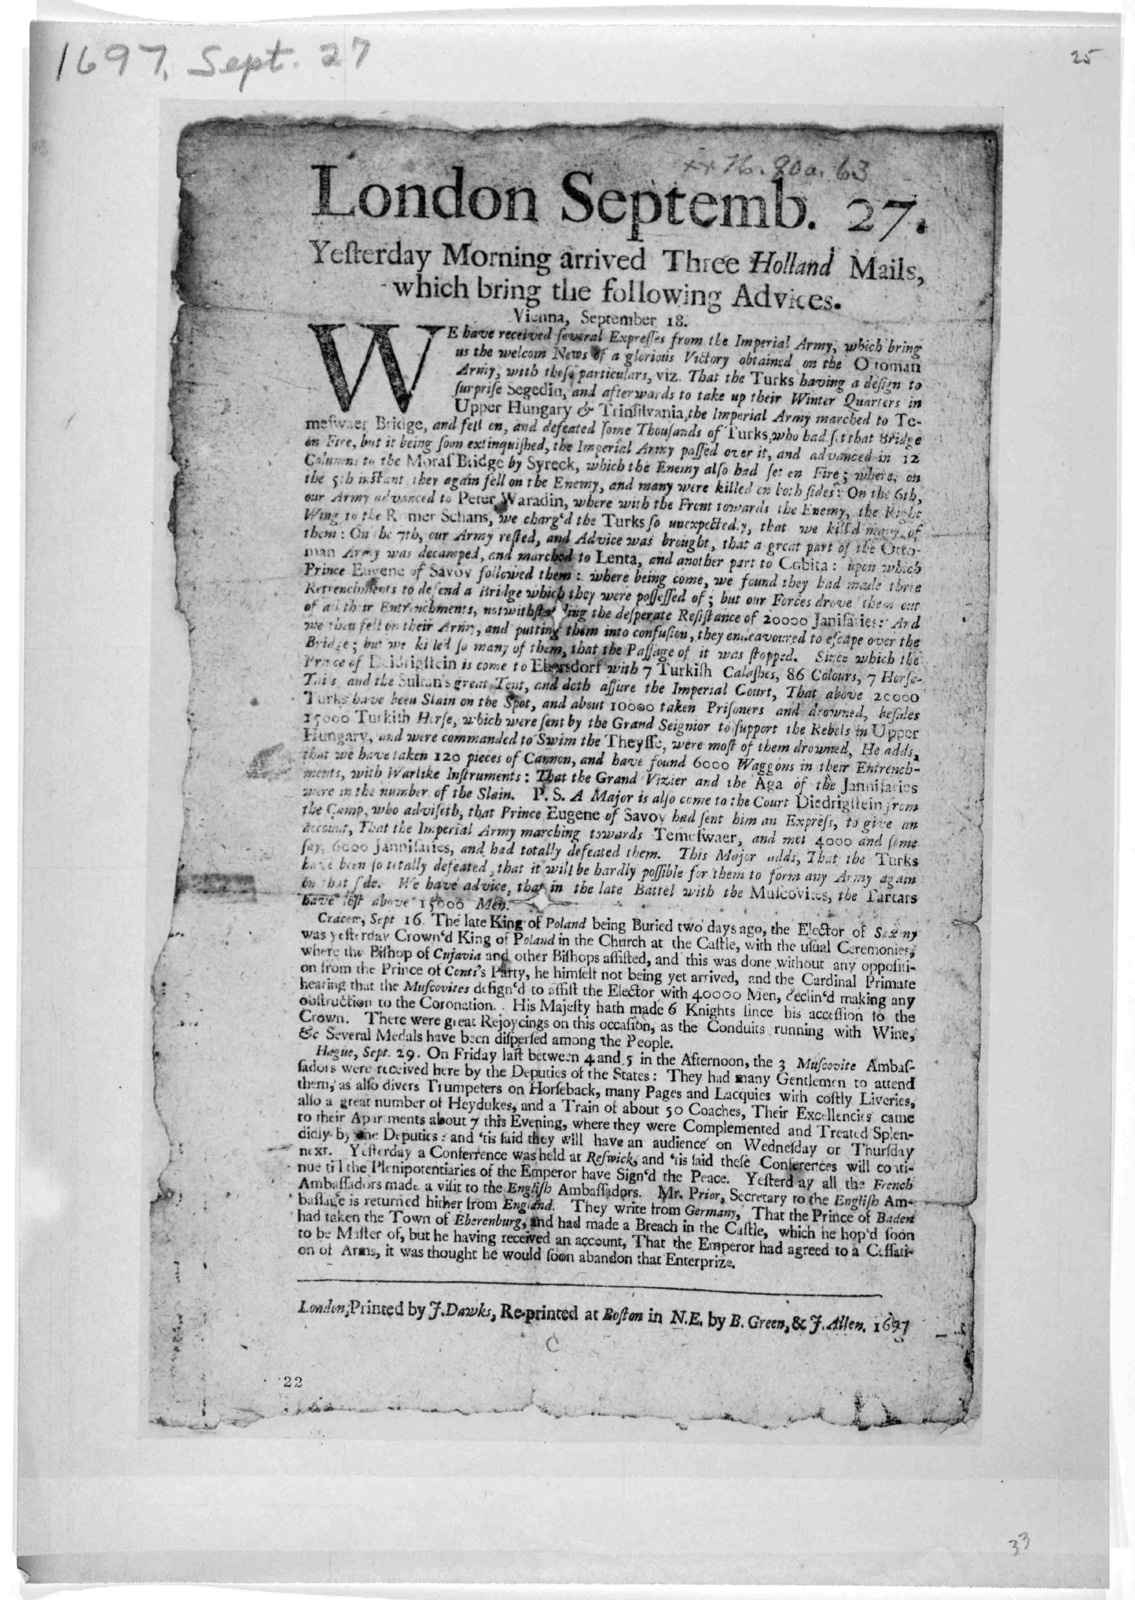 London, Septemb. 27, Yesterday morning arrived three Holland mails, which bring the following advices ... London, Printed by J. Dawks, Re-printed at Boston in N. E. by B. Green & J. Allen, 1697.